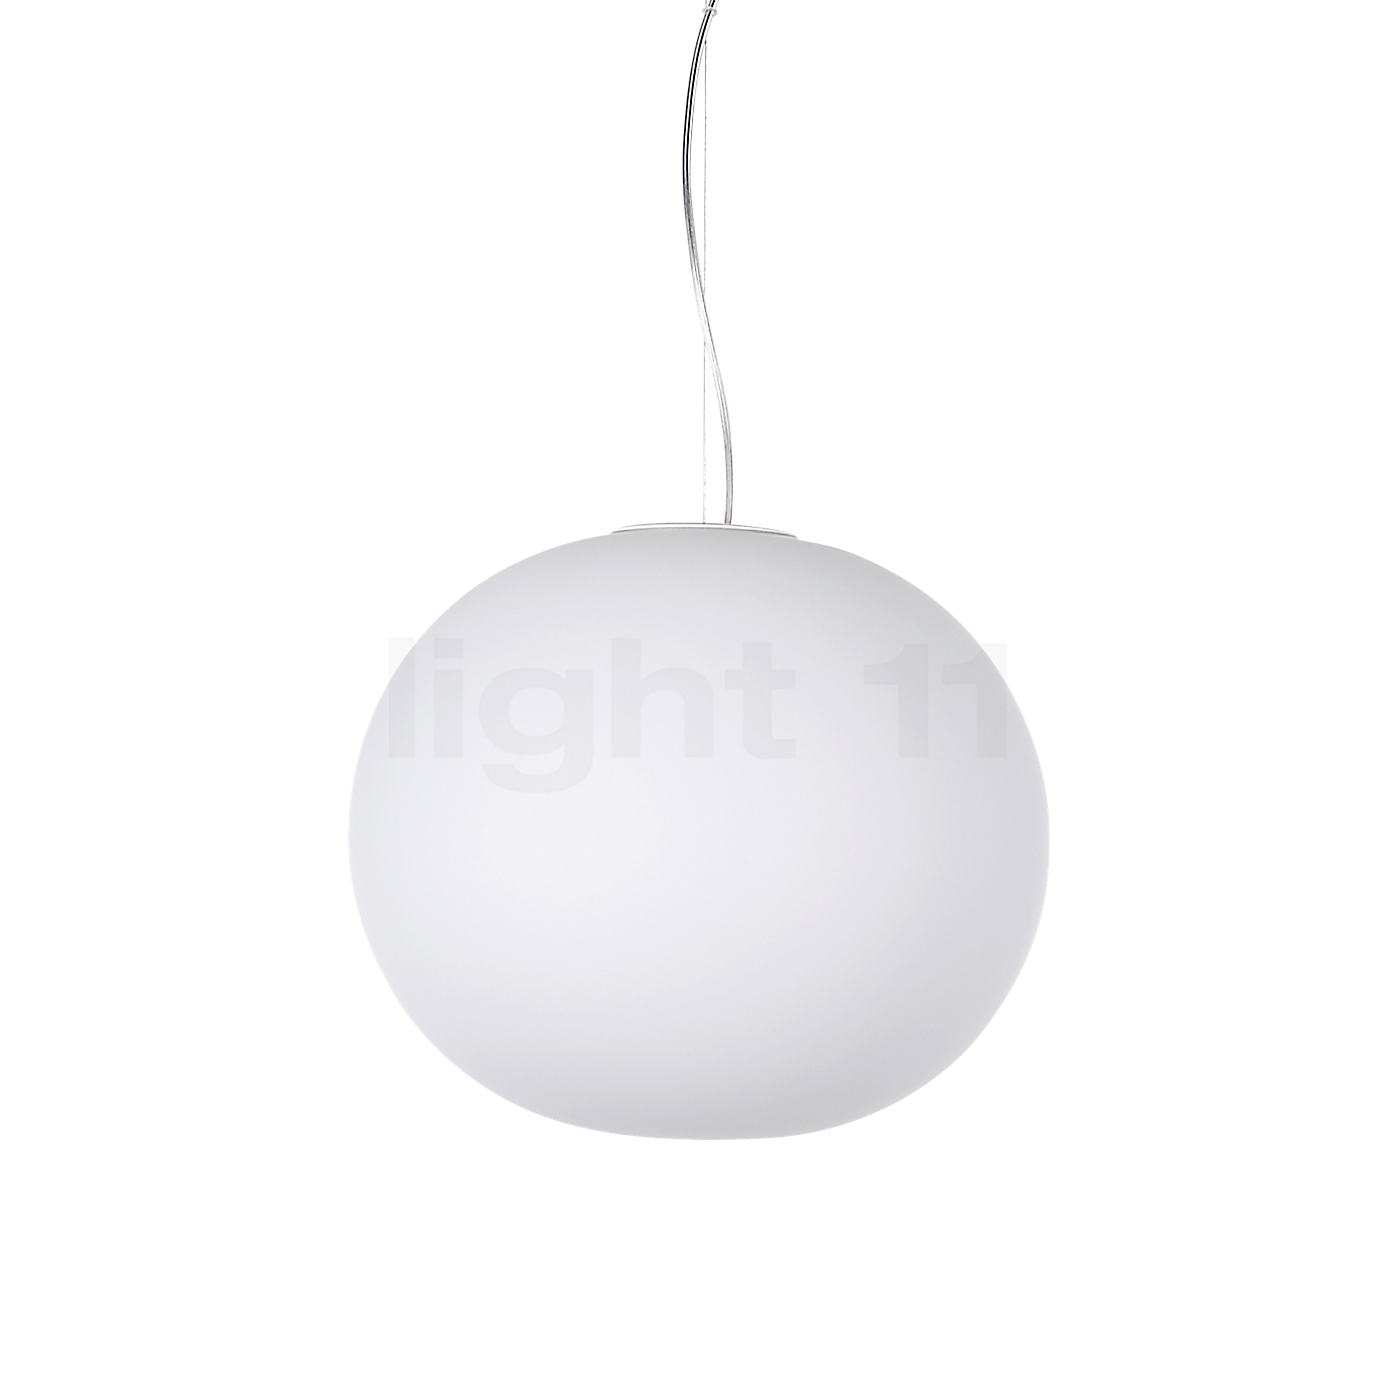 flos glo ball s1 pendant lights buy at. Black Bedroom Furniture Sets. Home Design Ideas